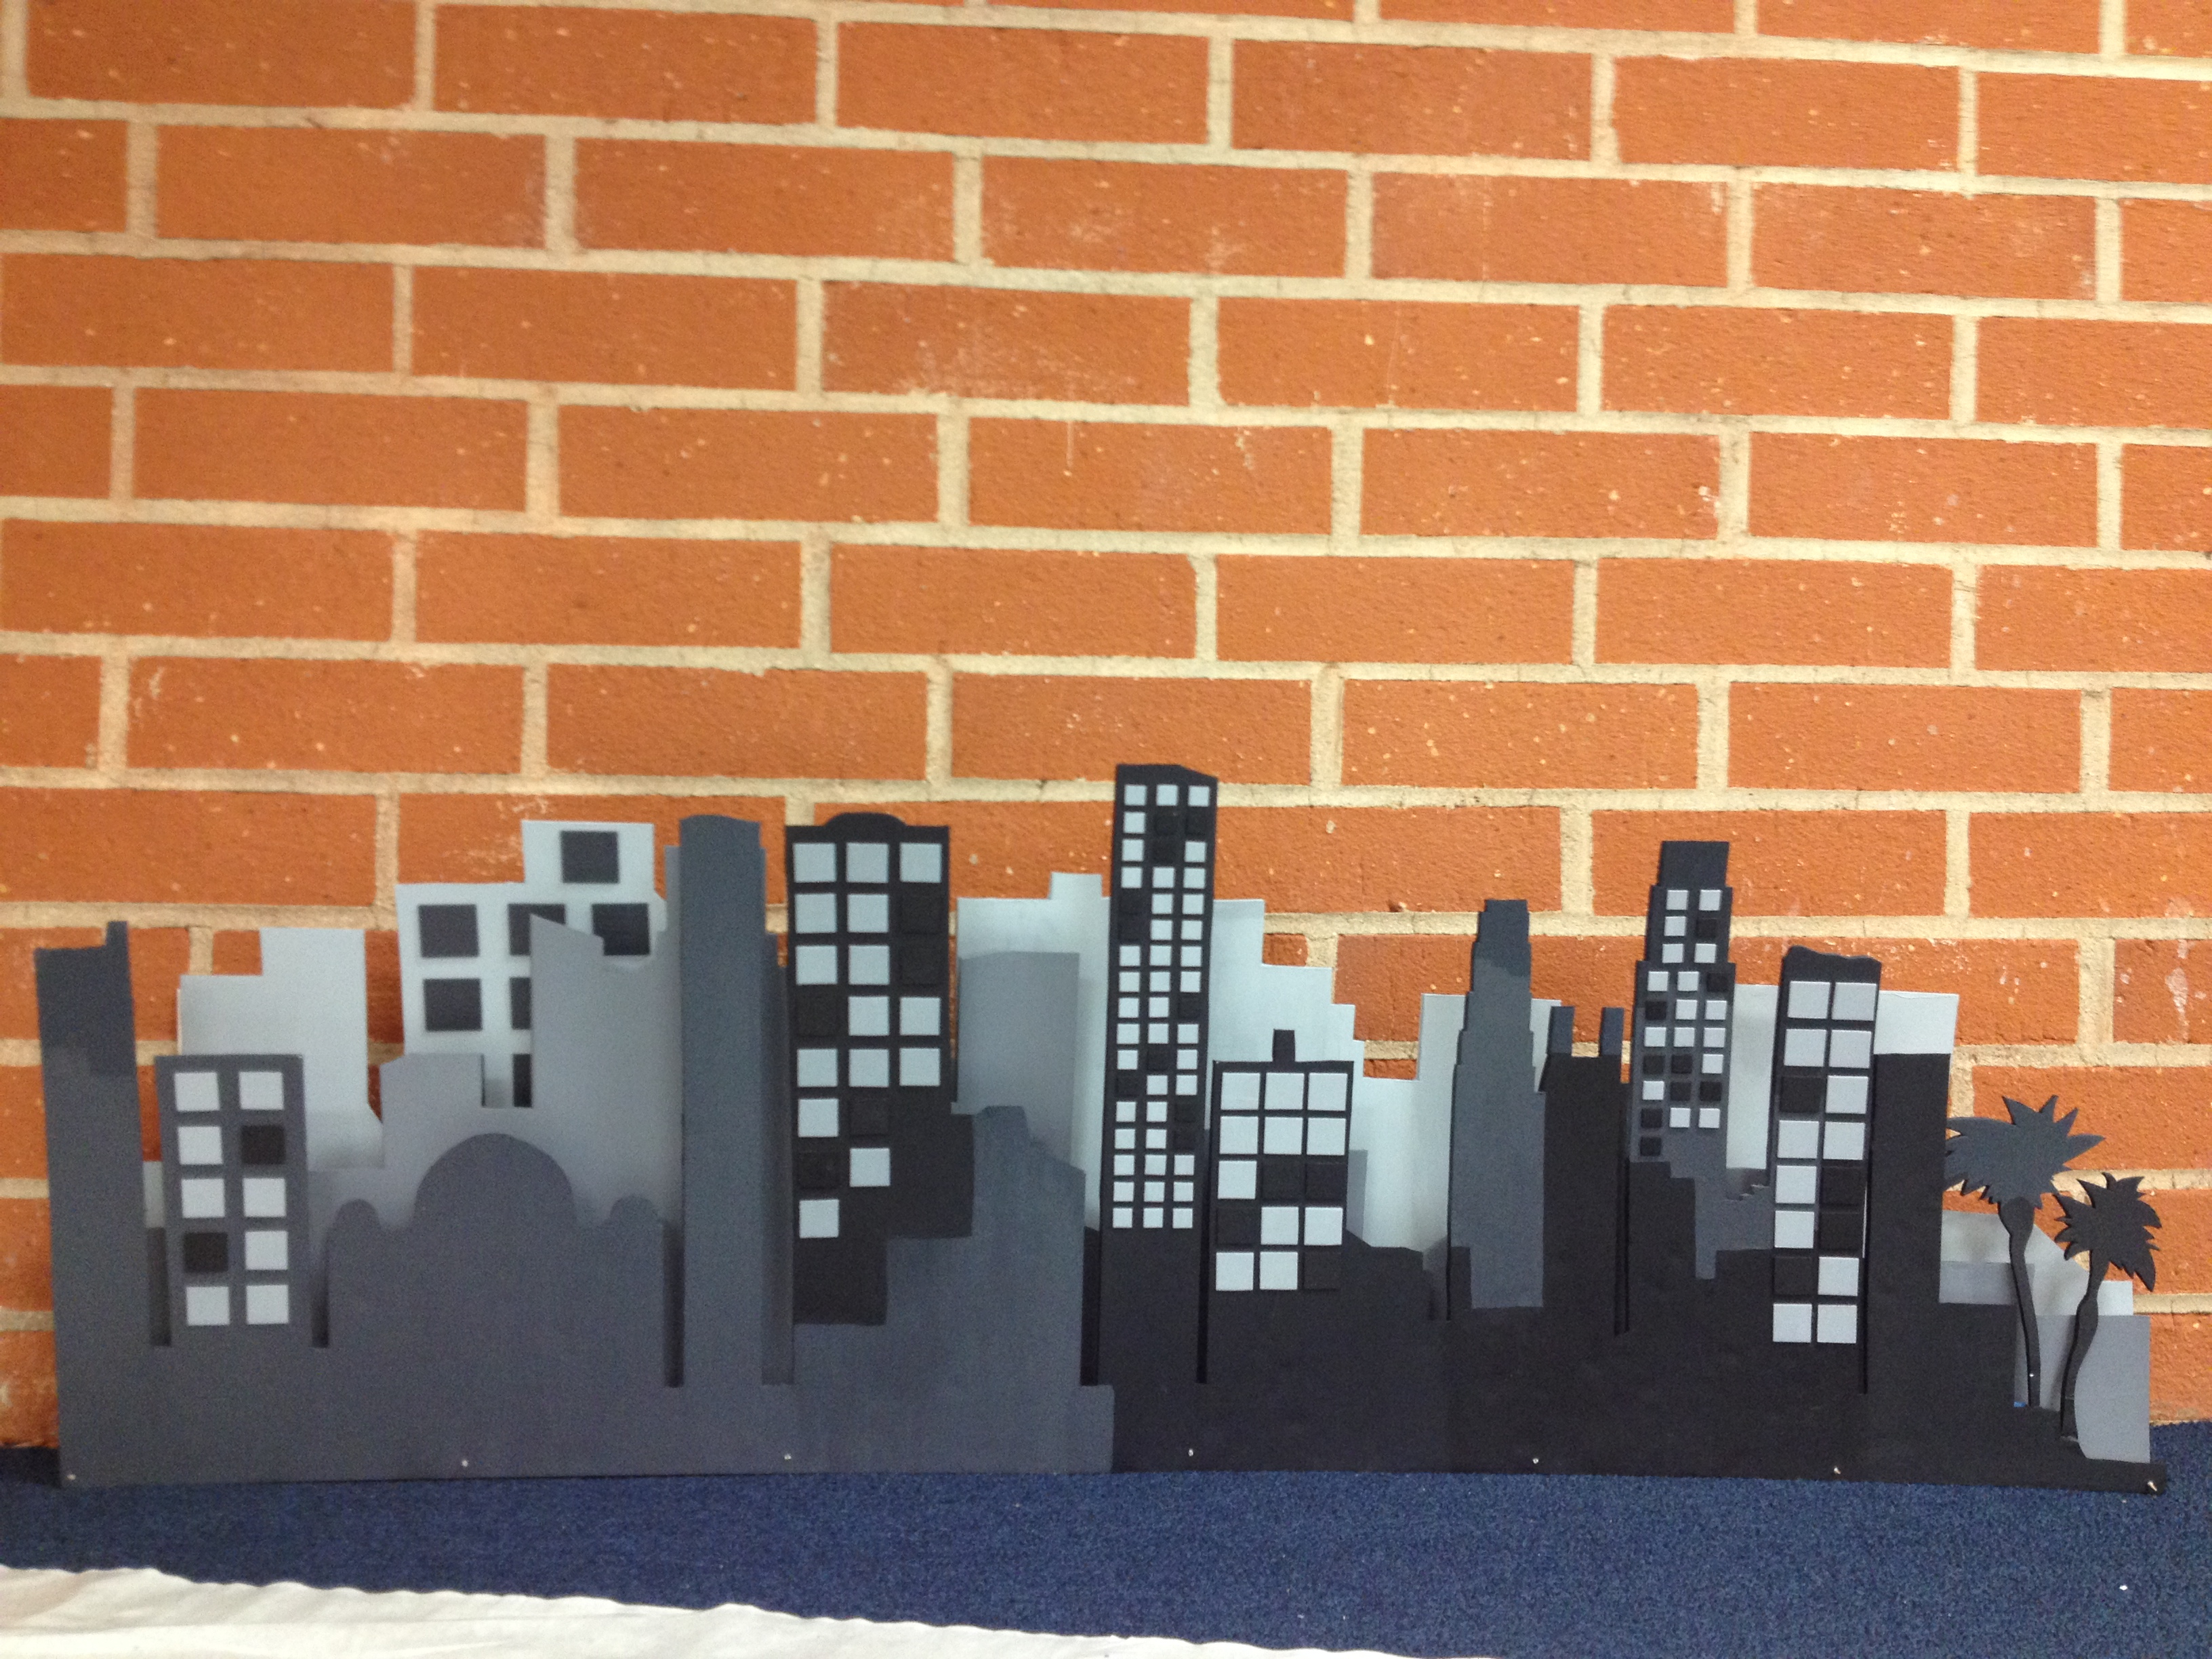 melissa-judson-production-design-celebrities-react-fine-brothers-finished-city-scape